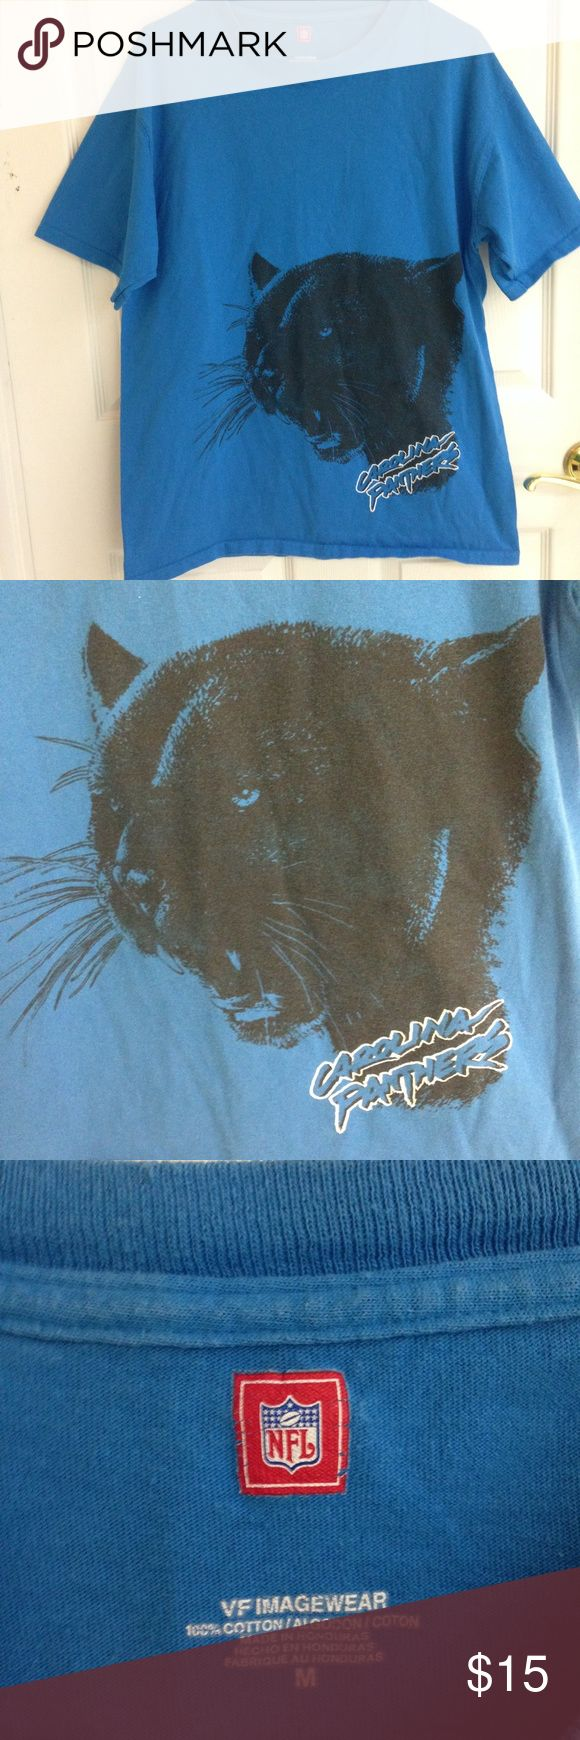 NFL Carolina Panthers T-shirt NFL Carolina Panthers T-shirt. Blue with image of panther on front. T-shirt is slightly faded from washing. Size M VF Imagewear 100% cotton NFL Shirts Tees - Short Sleeve